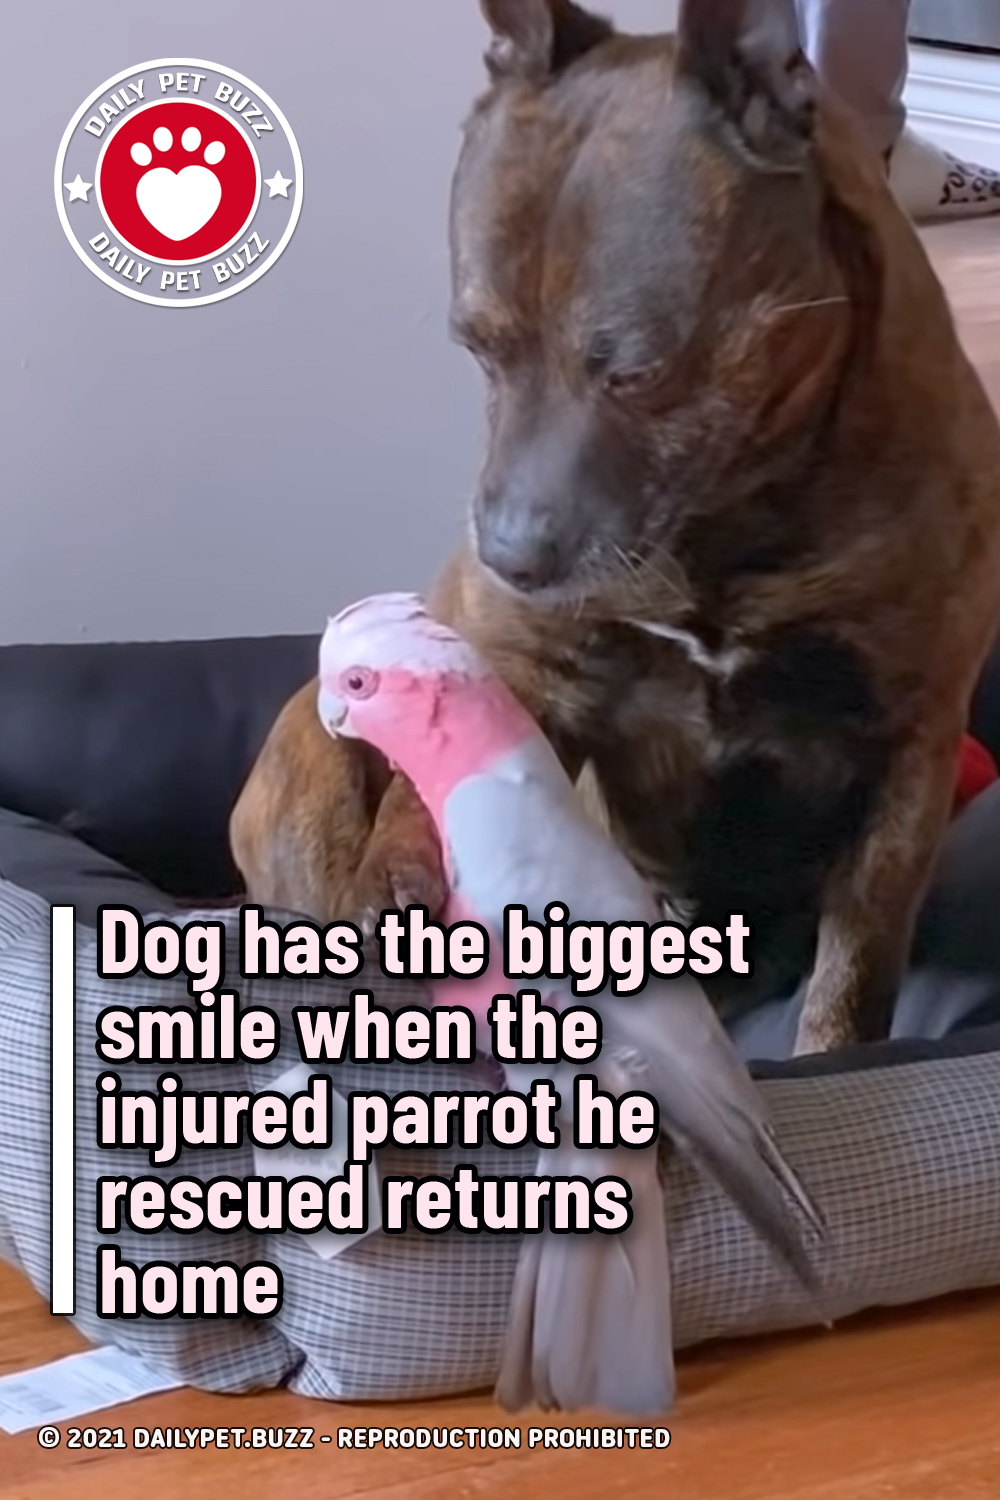 Dog has the biggest smile when the injured parrot he rescued returns home